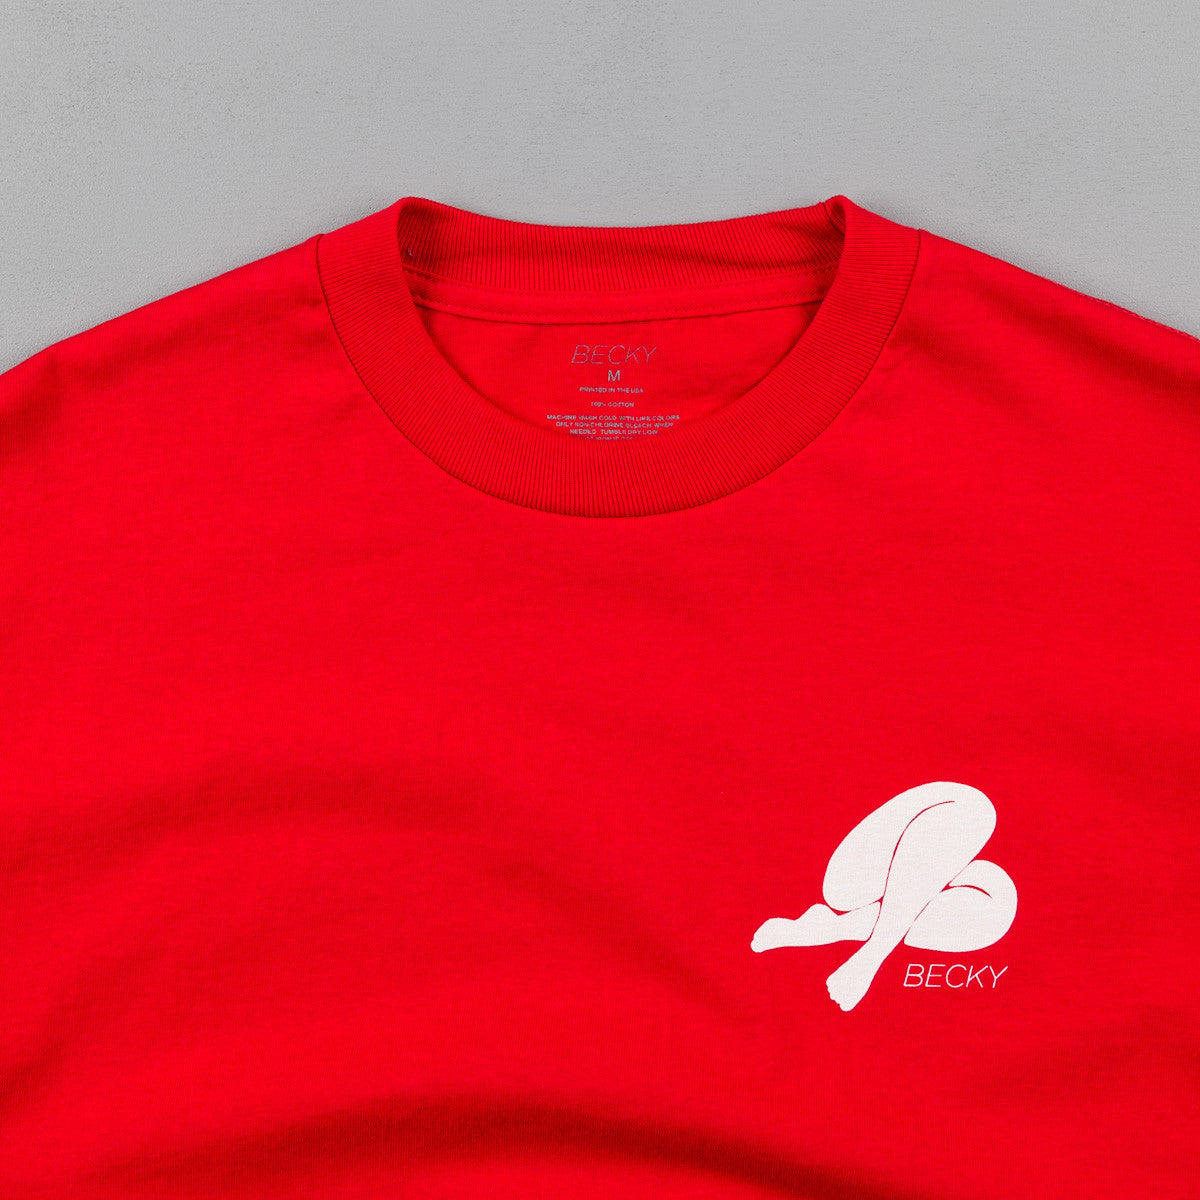 Becky Factory Becky Logo T-Shirt - Red